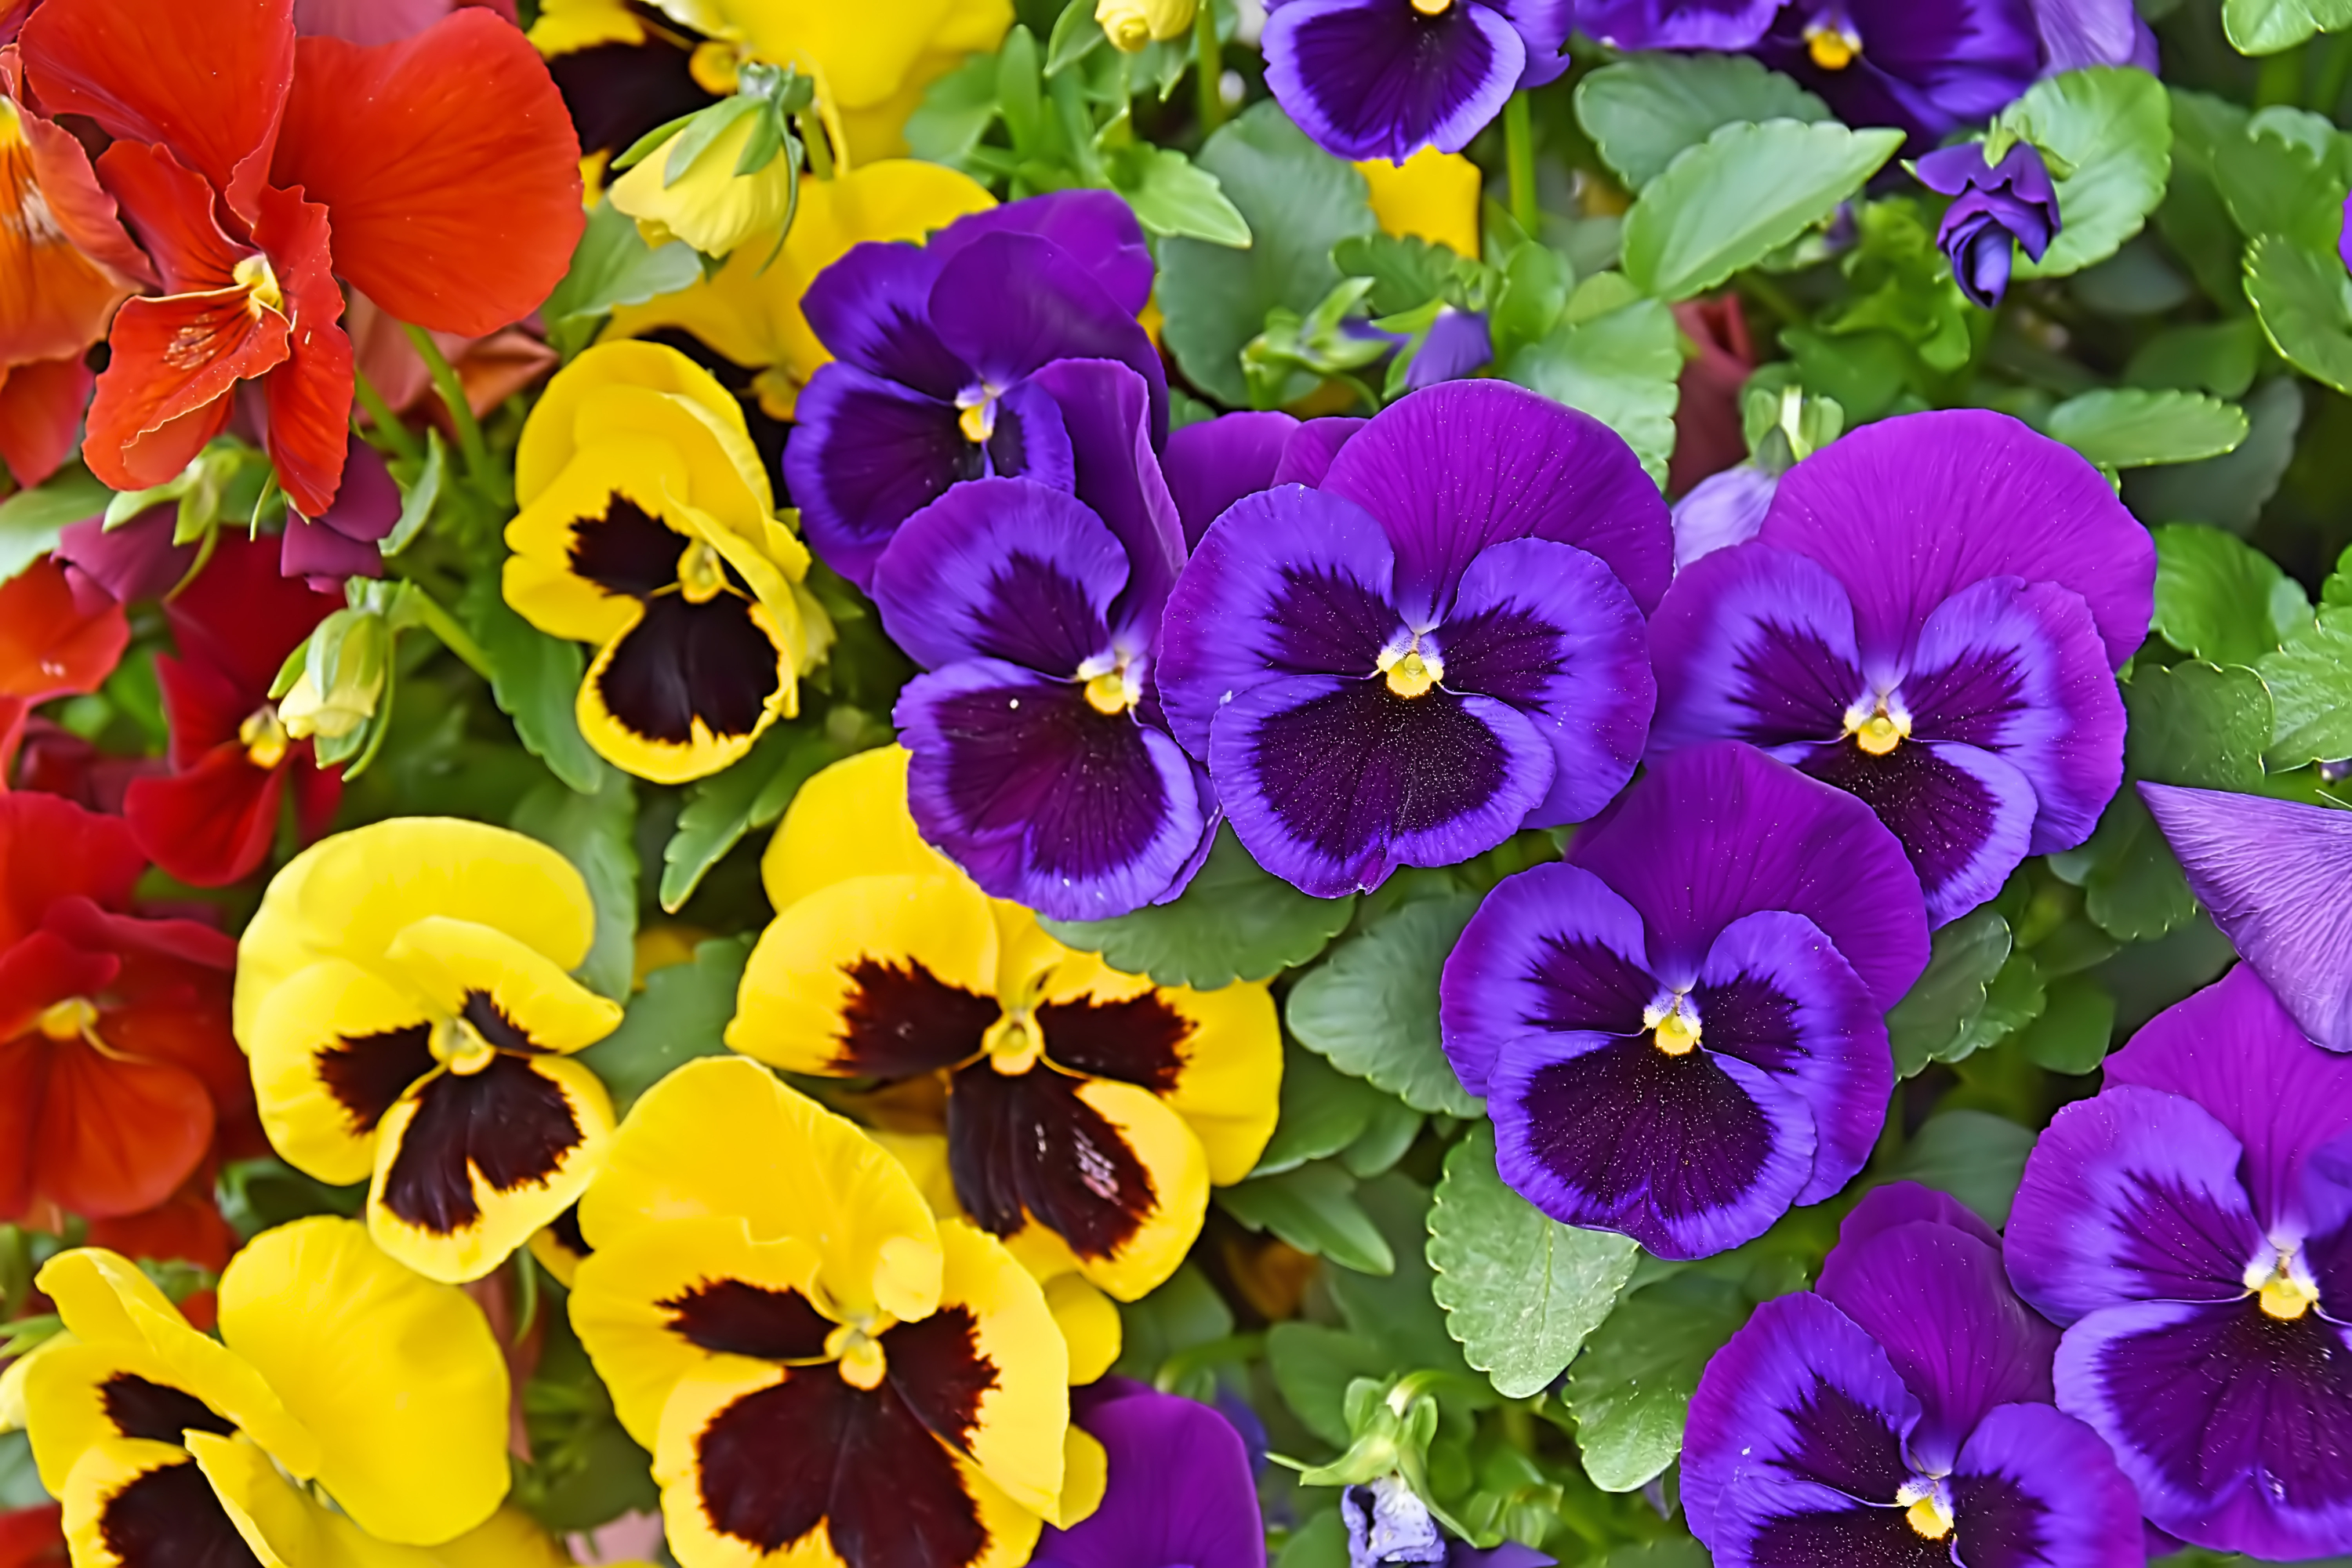 pansy | pansies | flowers | hardy flowers | flowers for beginners | garden | flower ideas | garden ideas